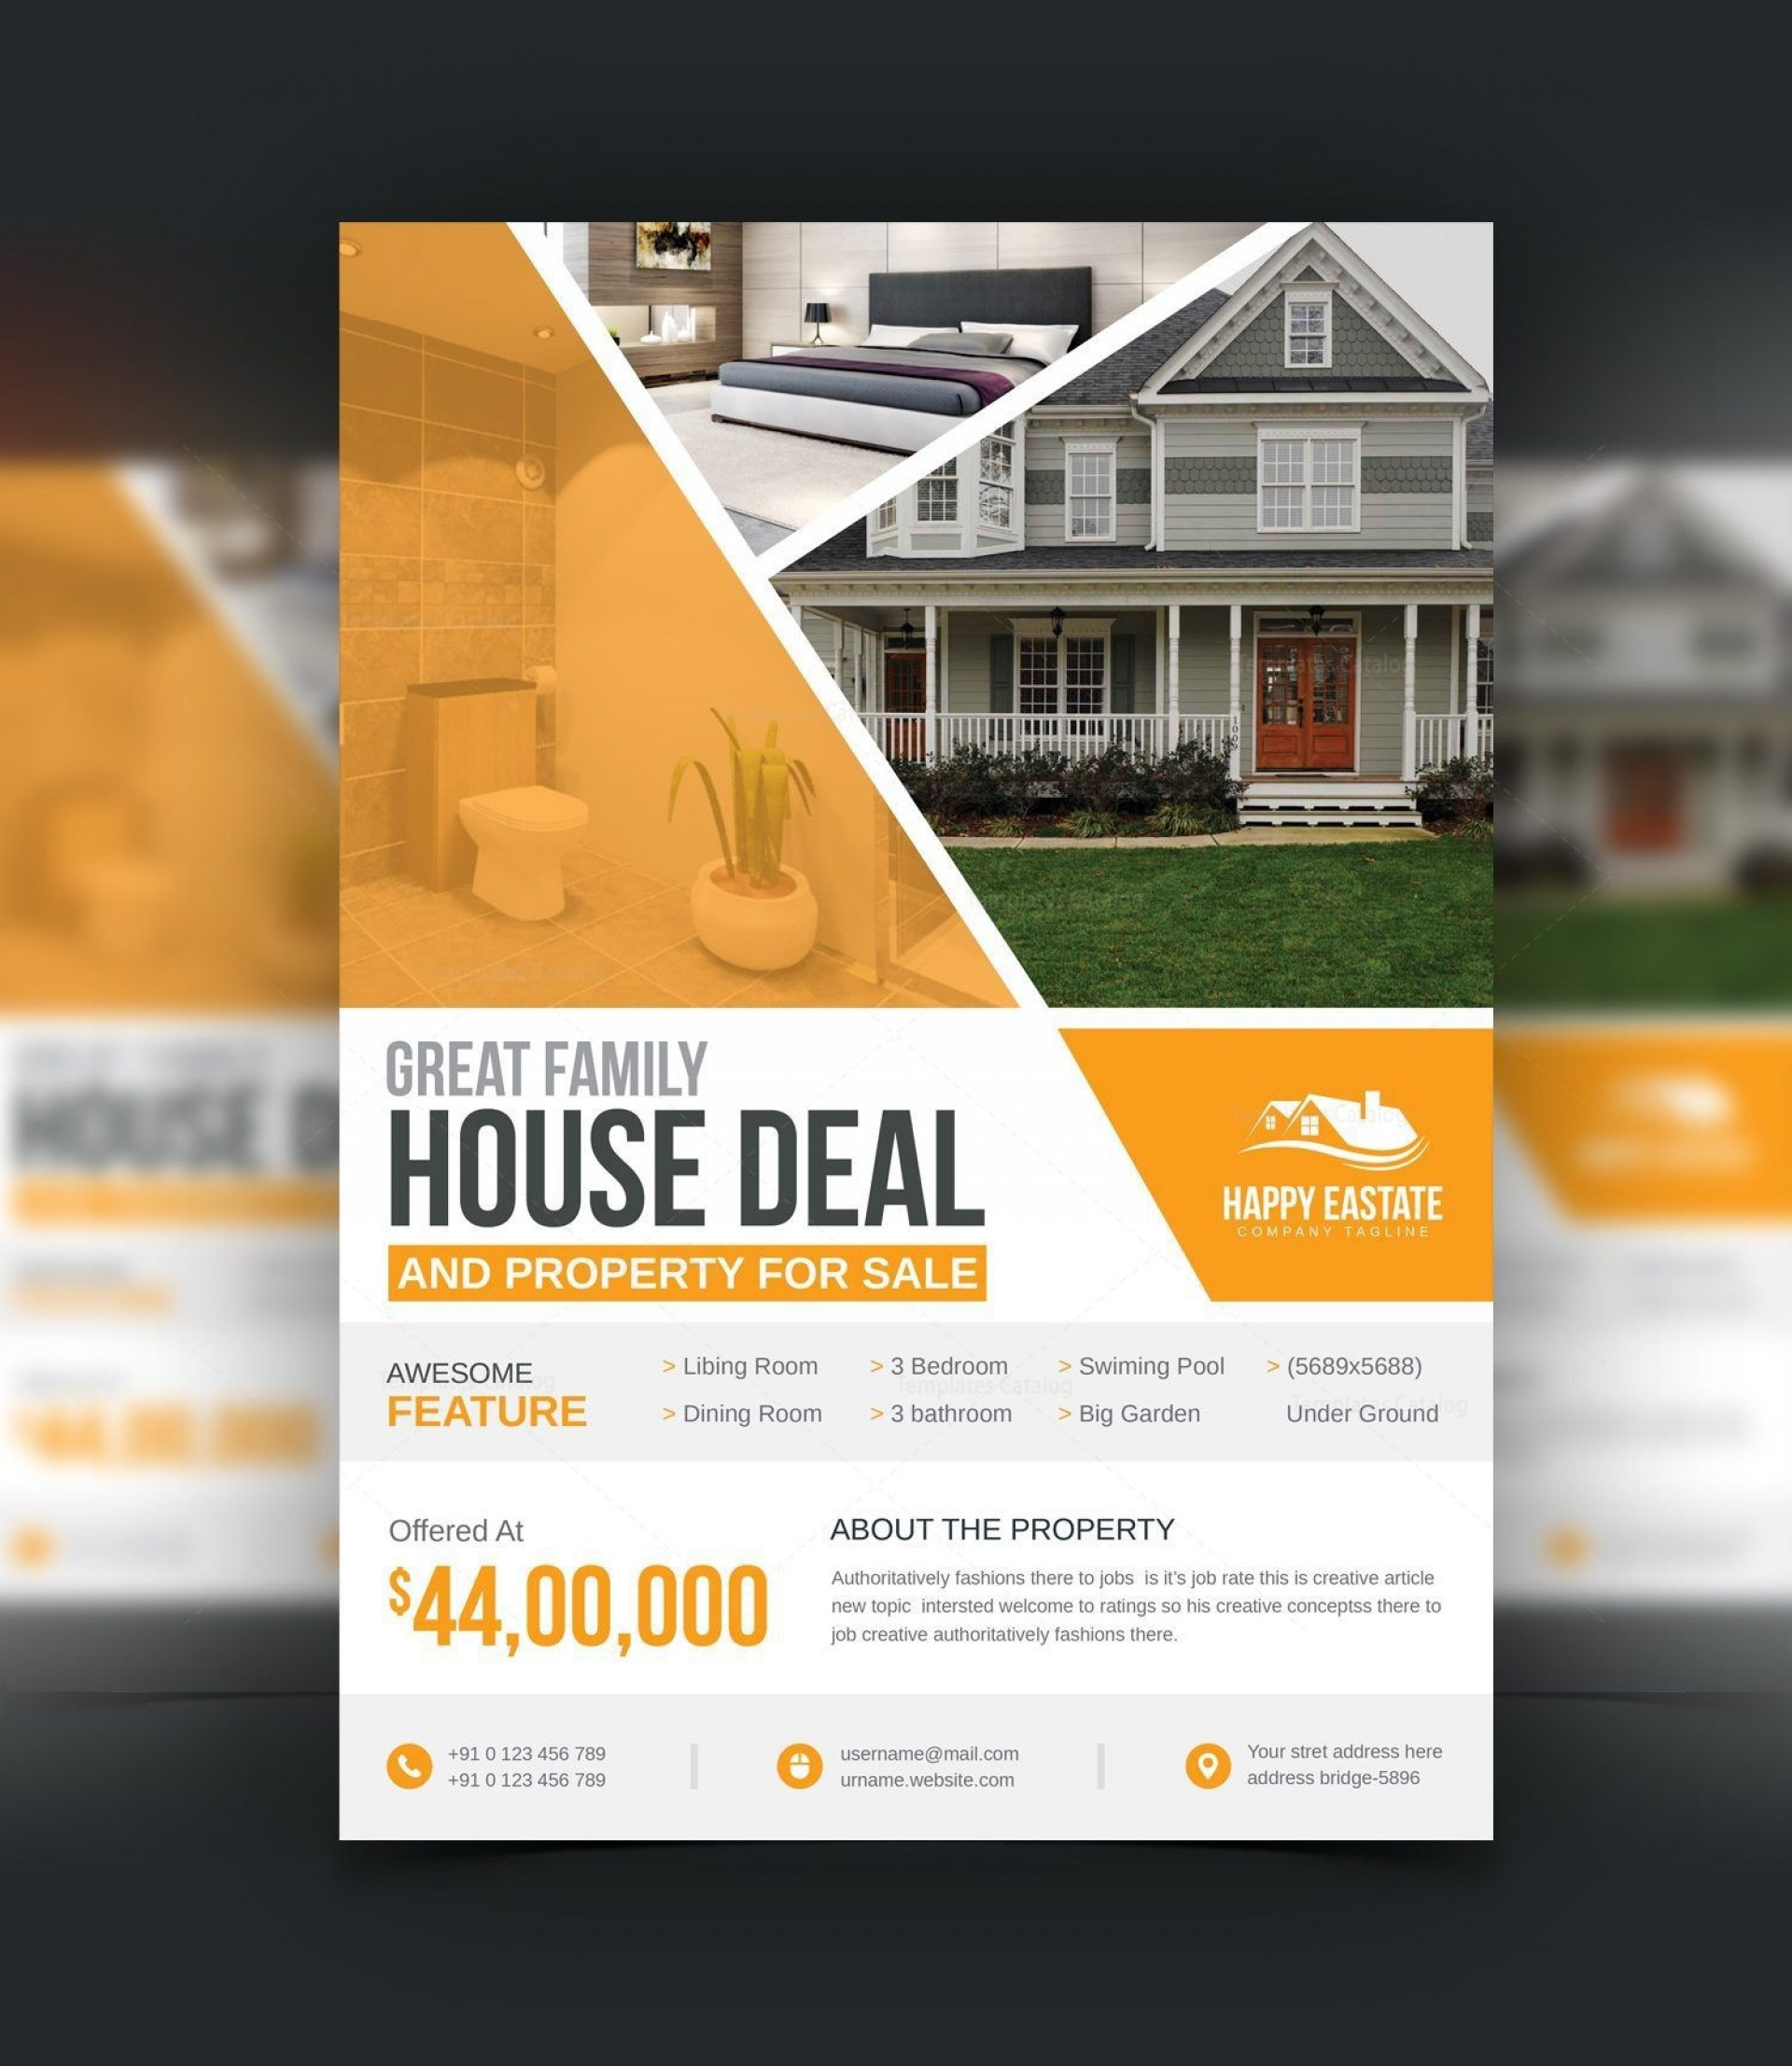 004 Awful Open House Flyer Template Highest Clarity  Templates Word Free Microsoft Real Estate1920